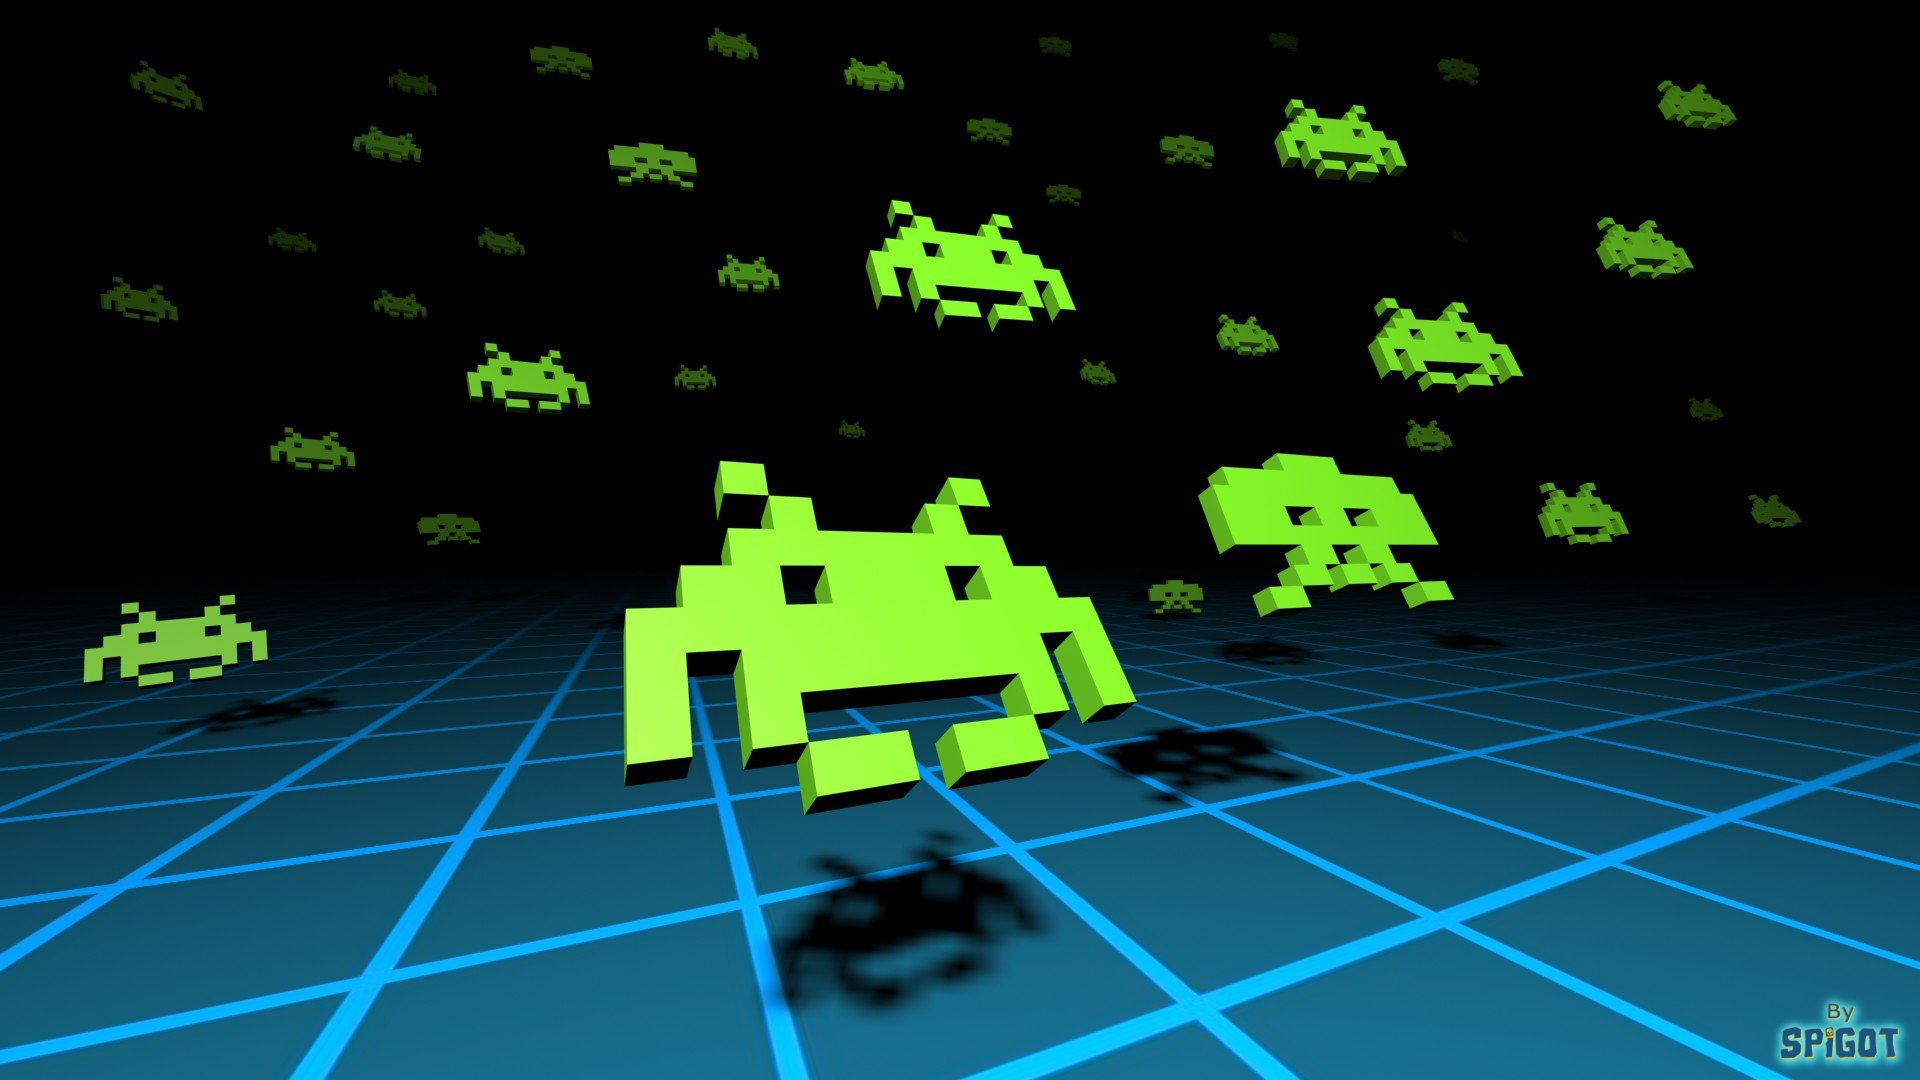 Space invaders wallpaper 178841 for Space invaders